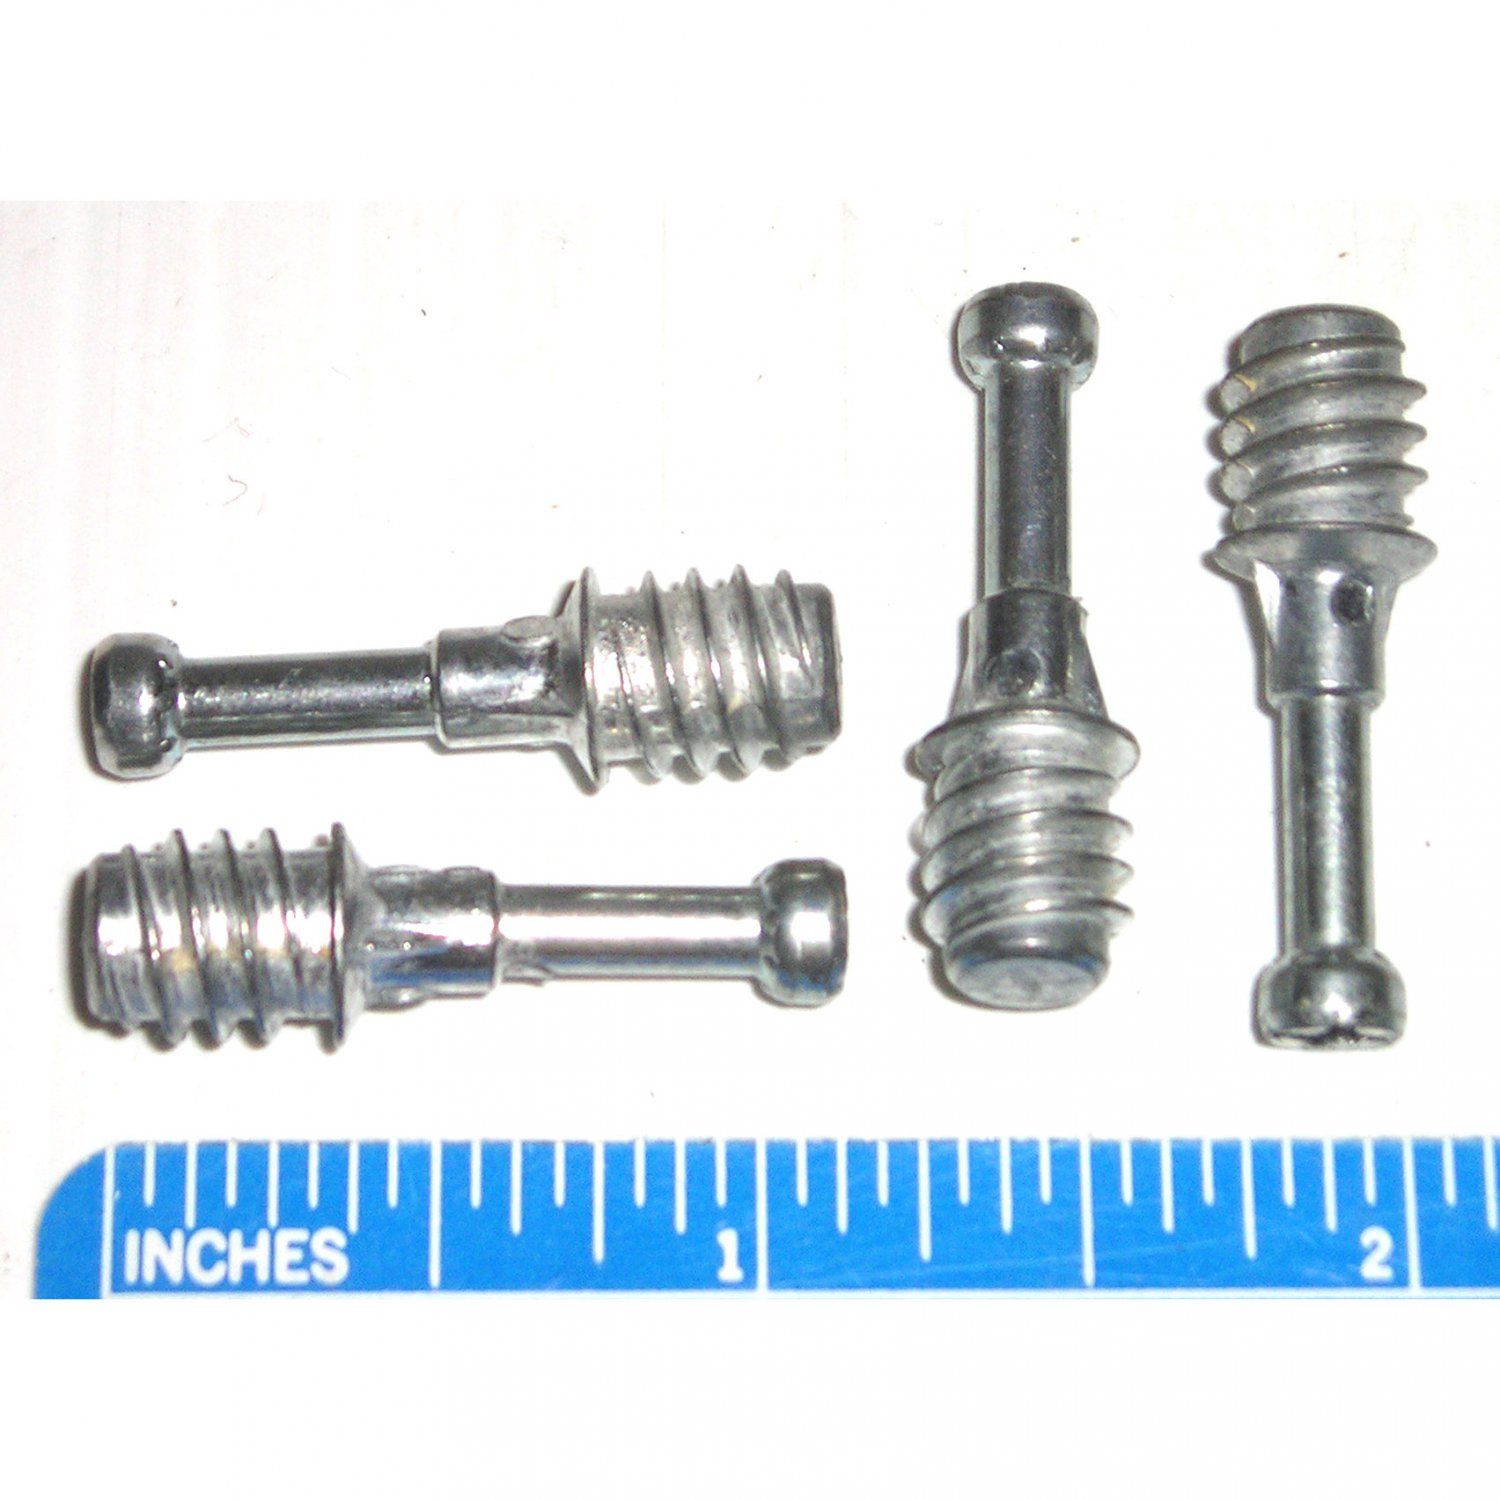 30mm Steel Dowel Pins For Cam Lock Fasteners For 7mm Hole